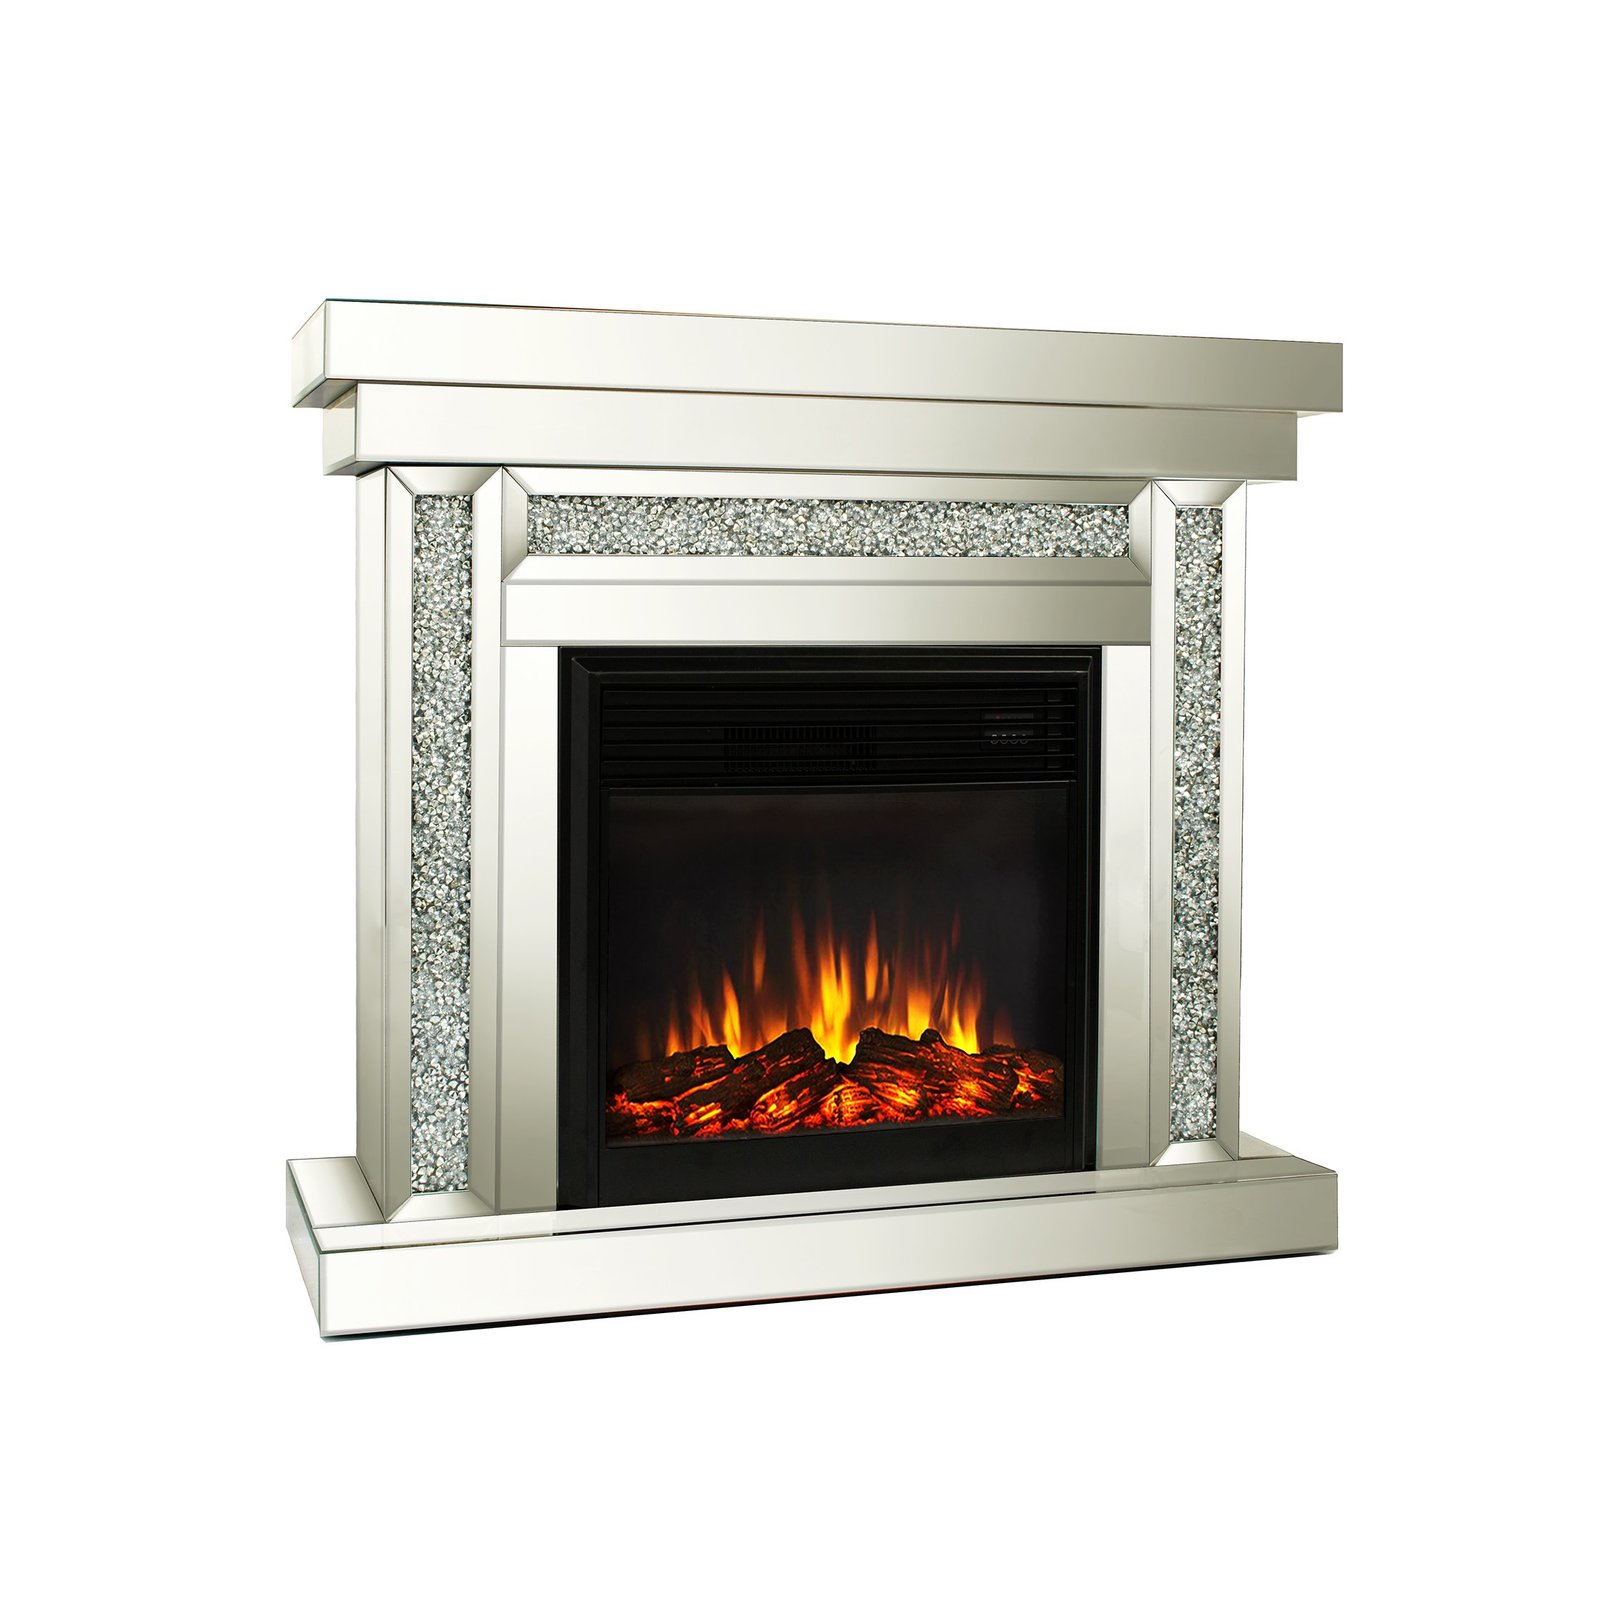 crystals and gas zr gl fireplace glass alternatives fire crystal logs